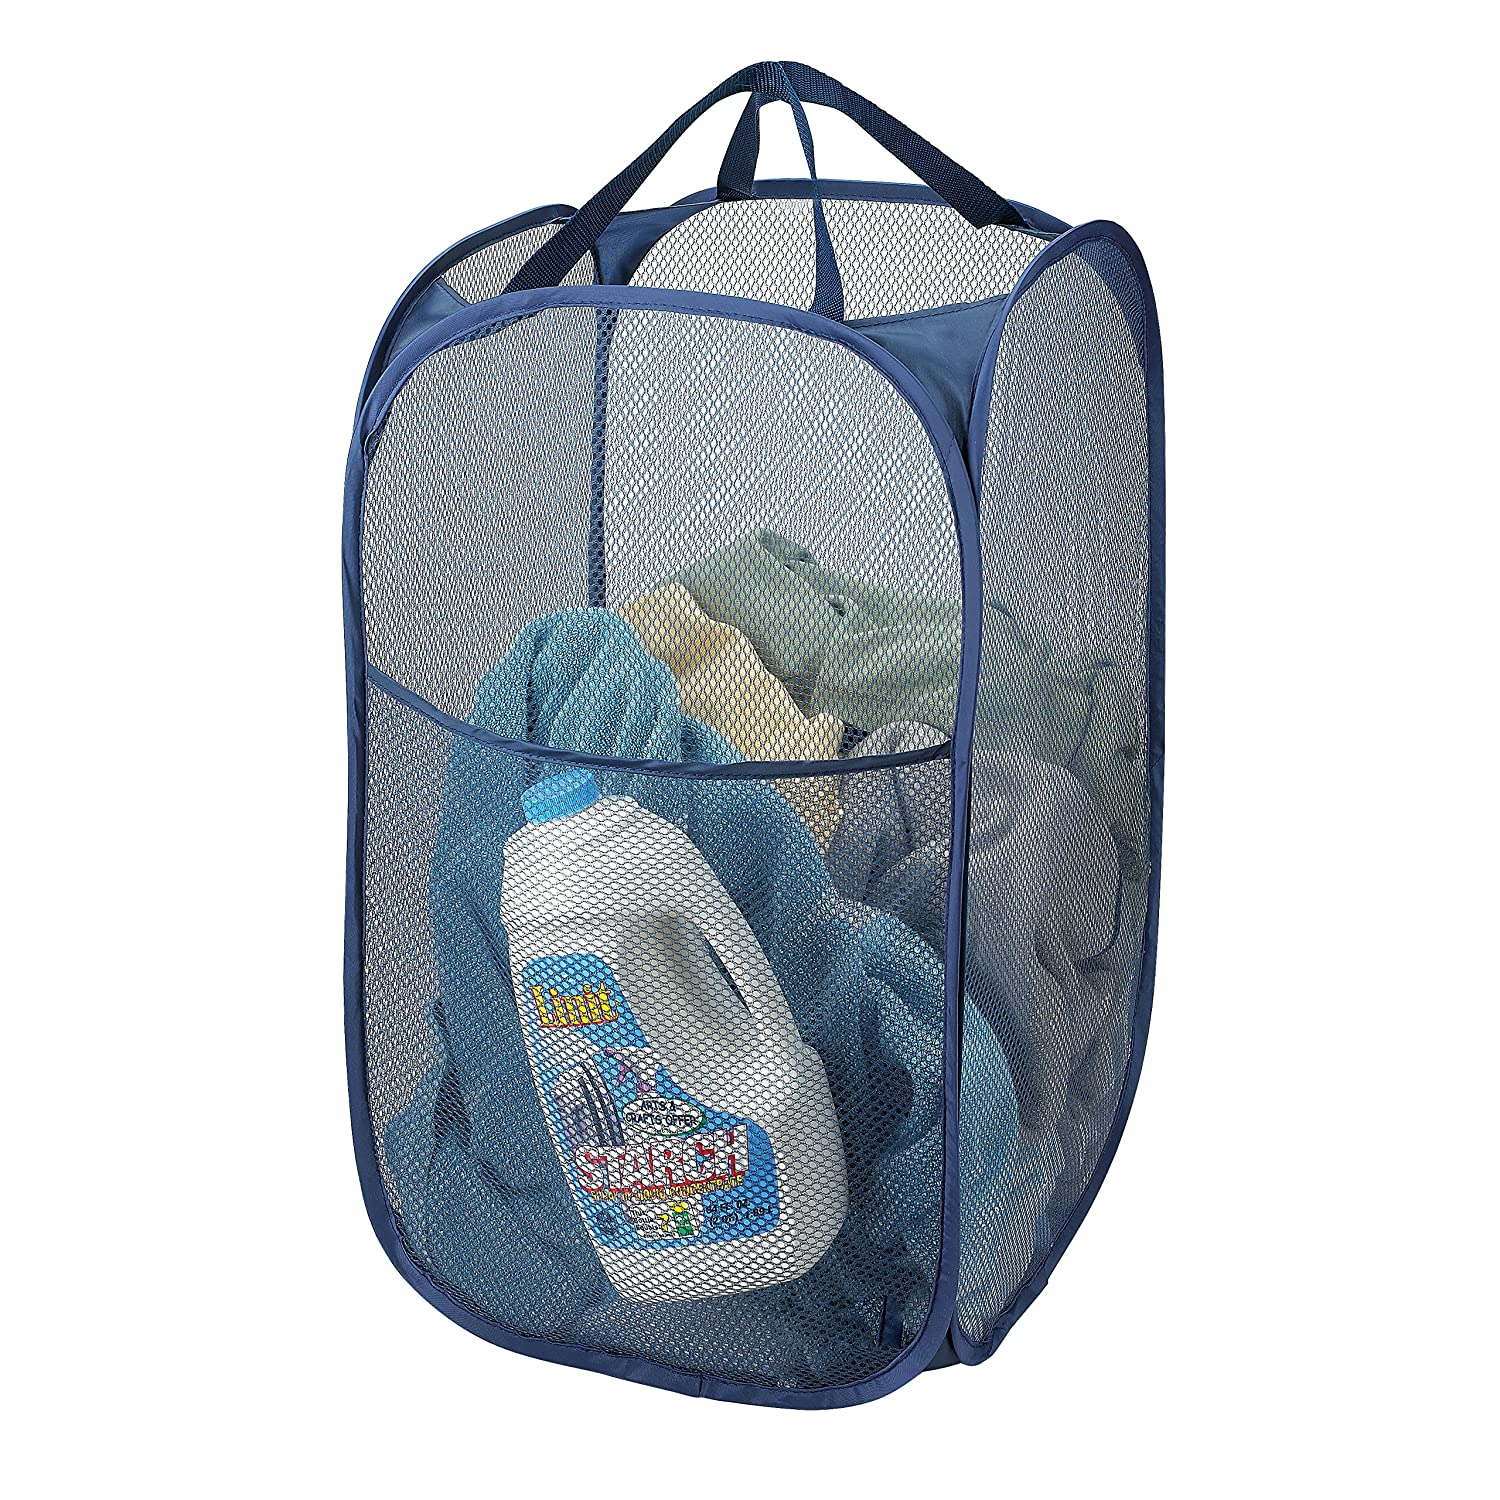 Top 20 Best Laundry Bags Amp Hampers Reviews 2019 2020 On